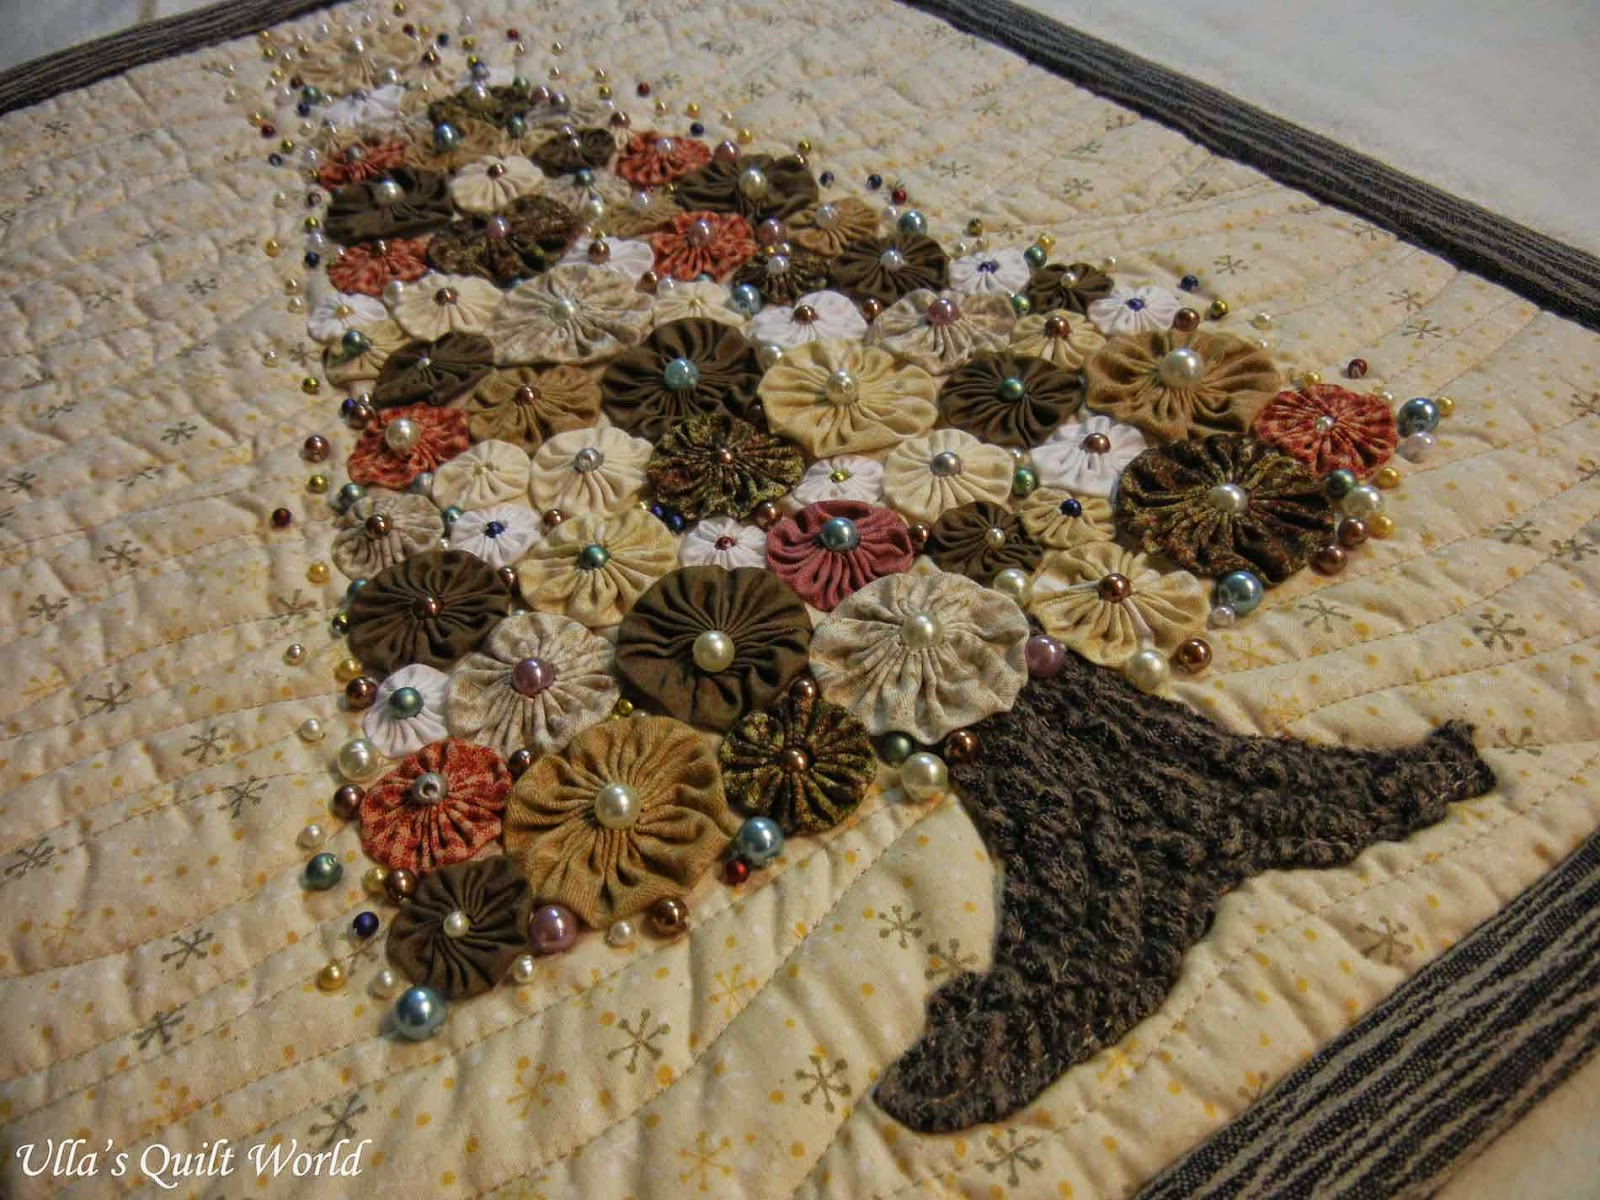 Ulla's Quilt World: Christmas Tree Quilt